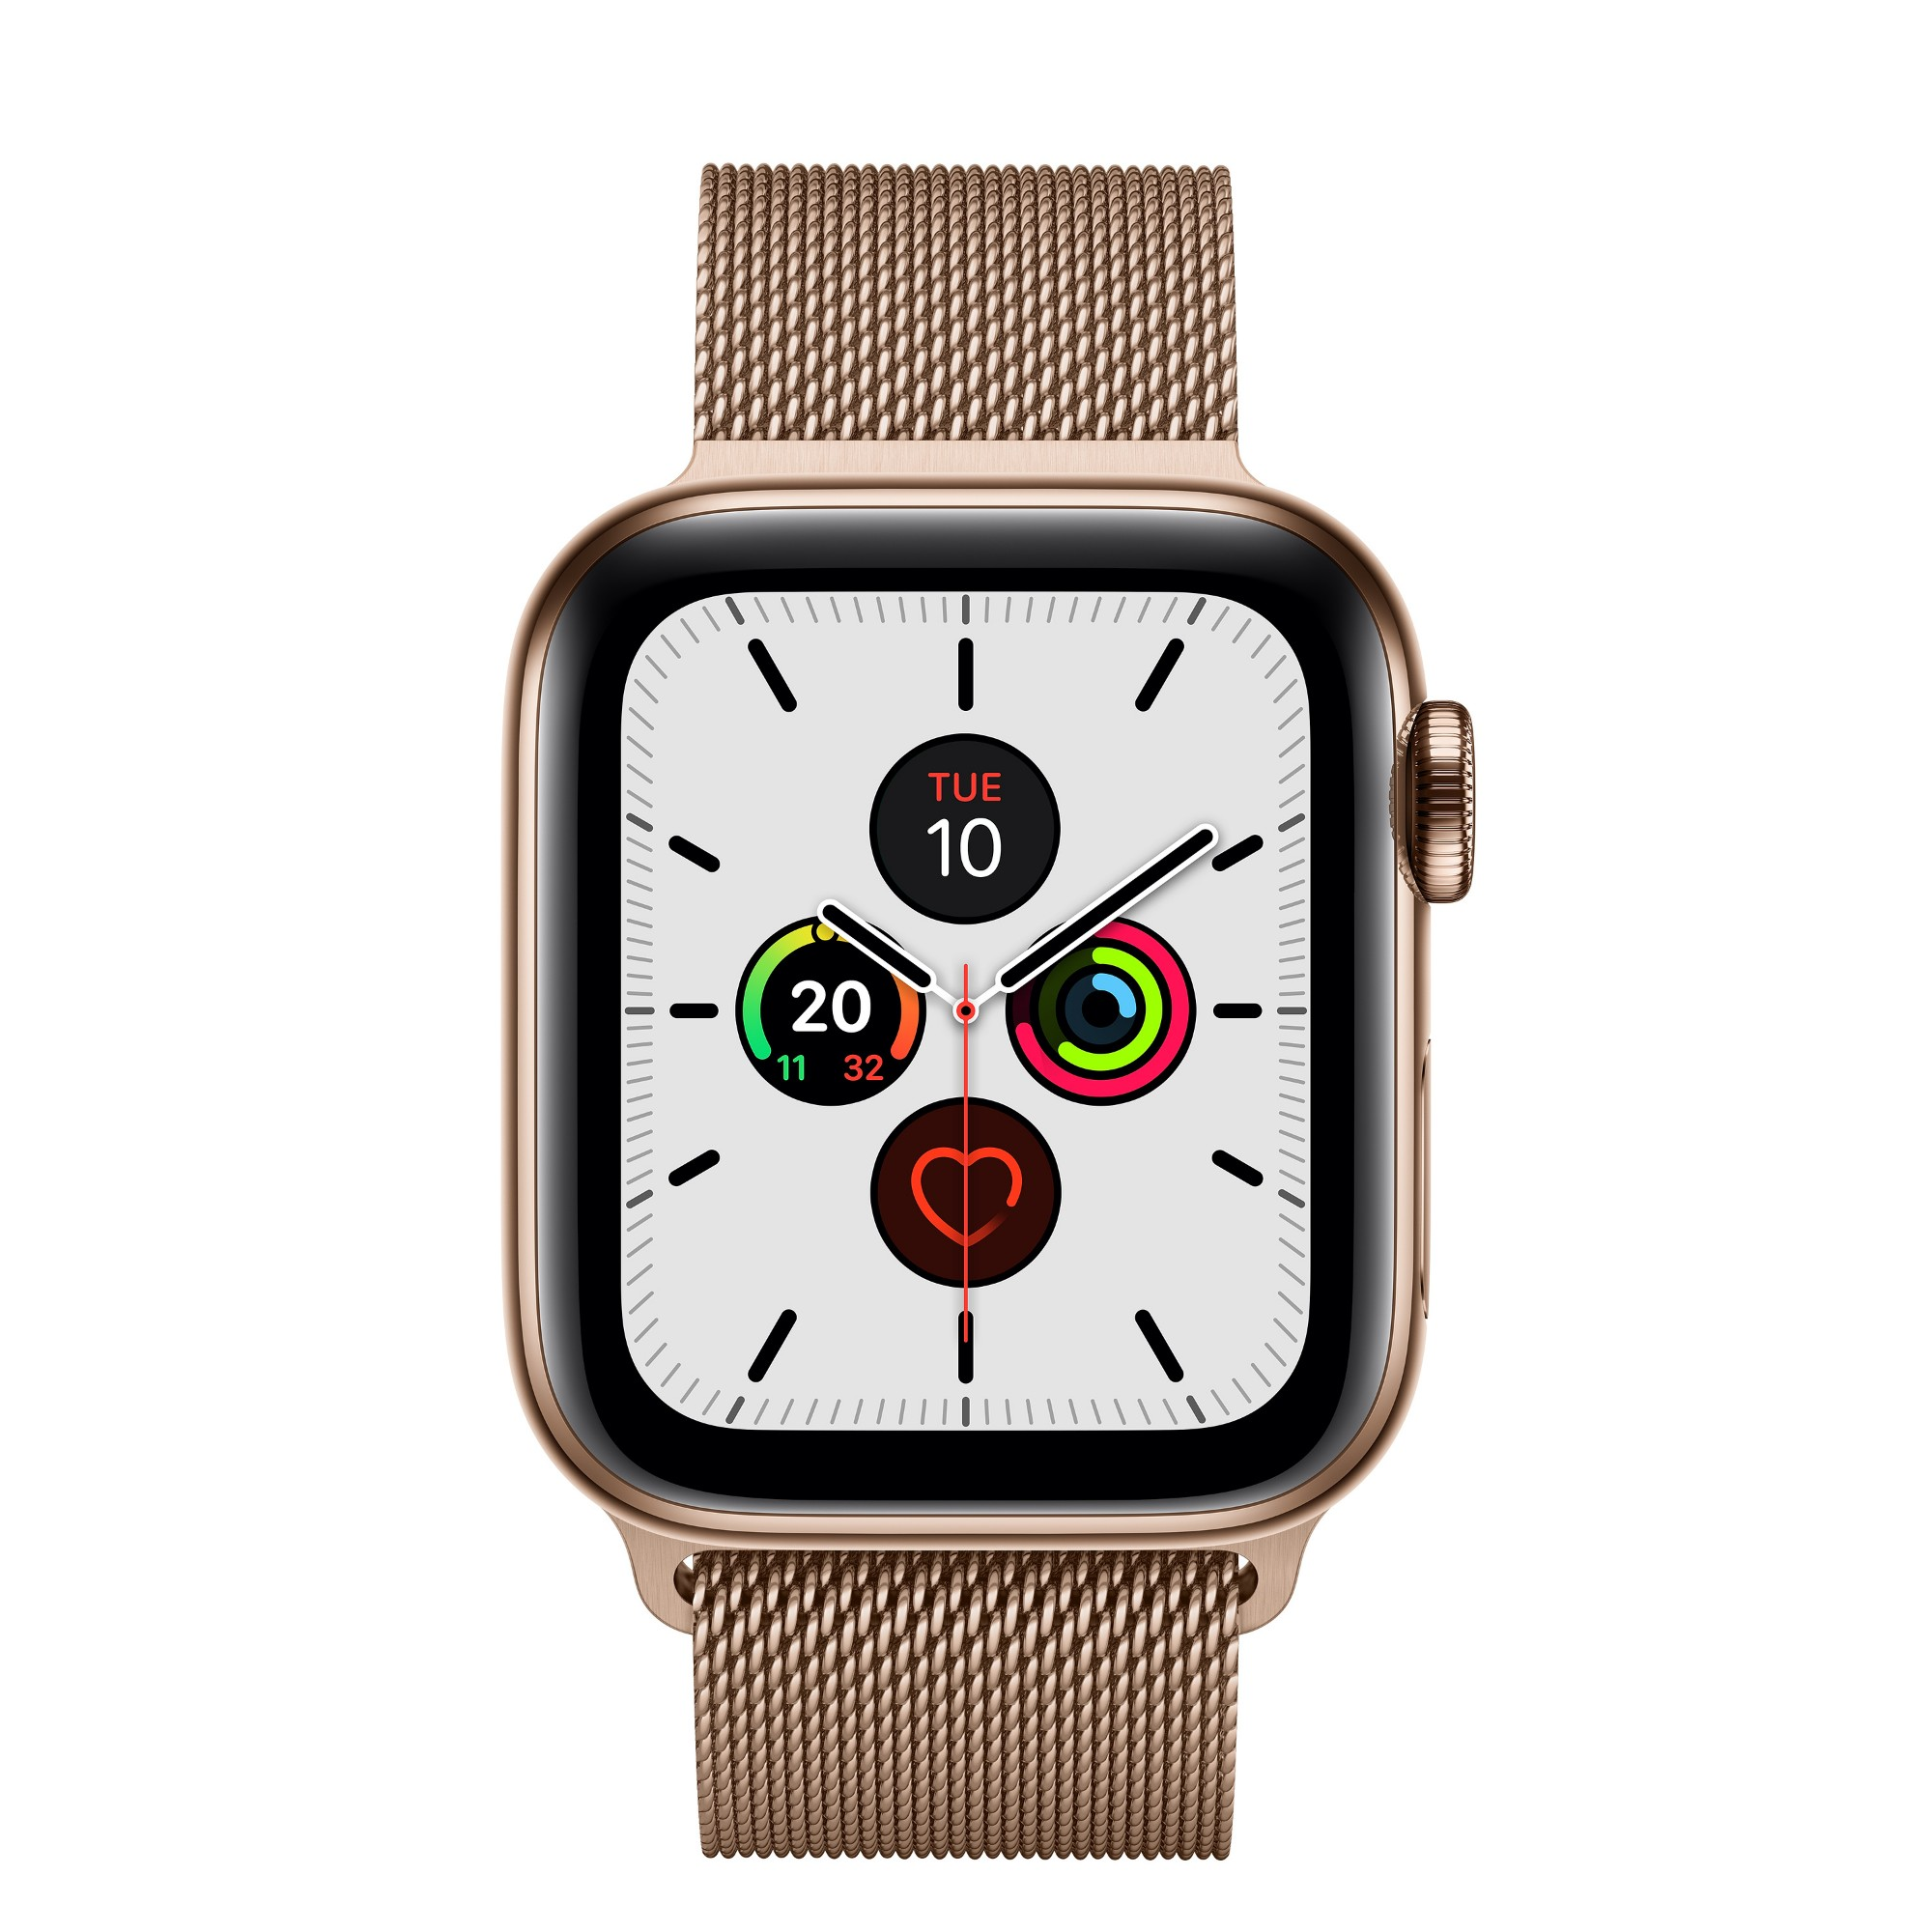 Apple Watch Series 5 smartwatch Gold OLED Cellular GPS satellite